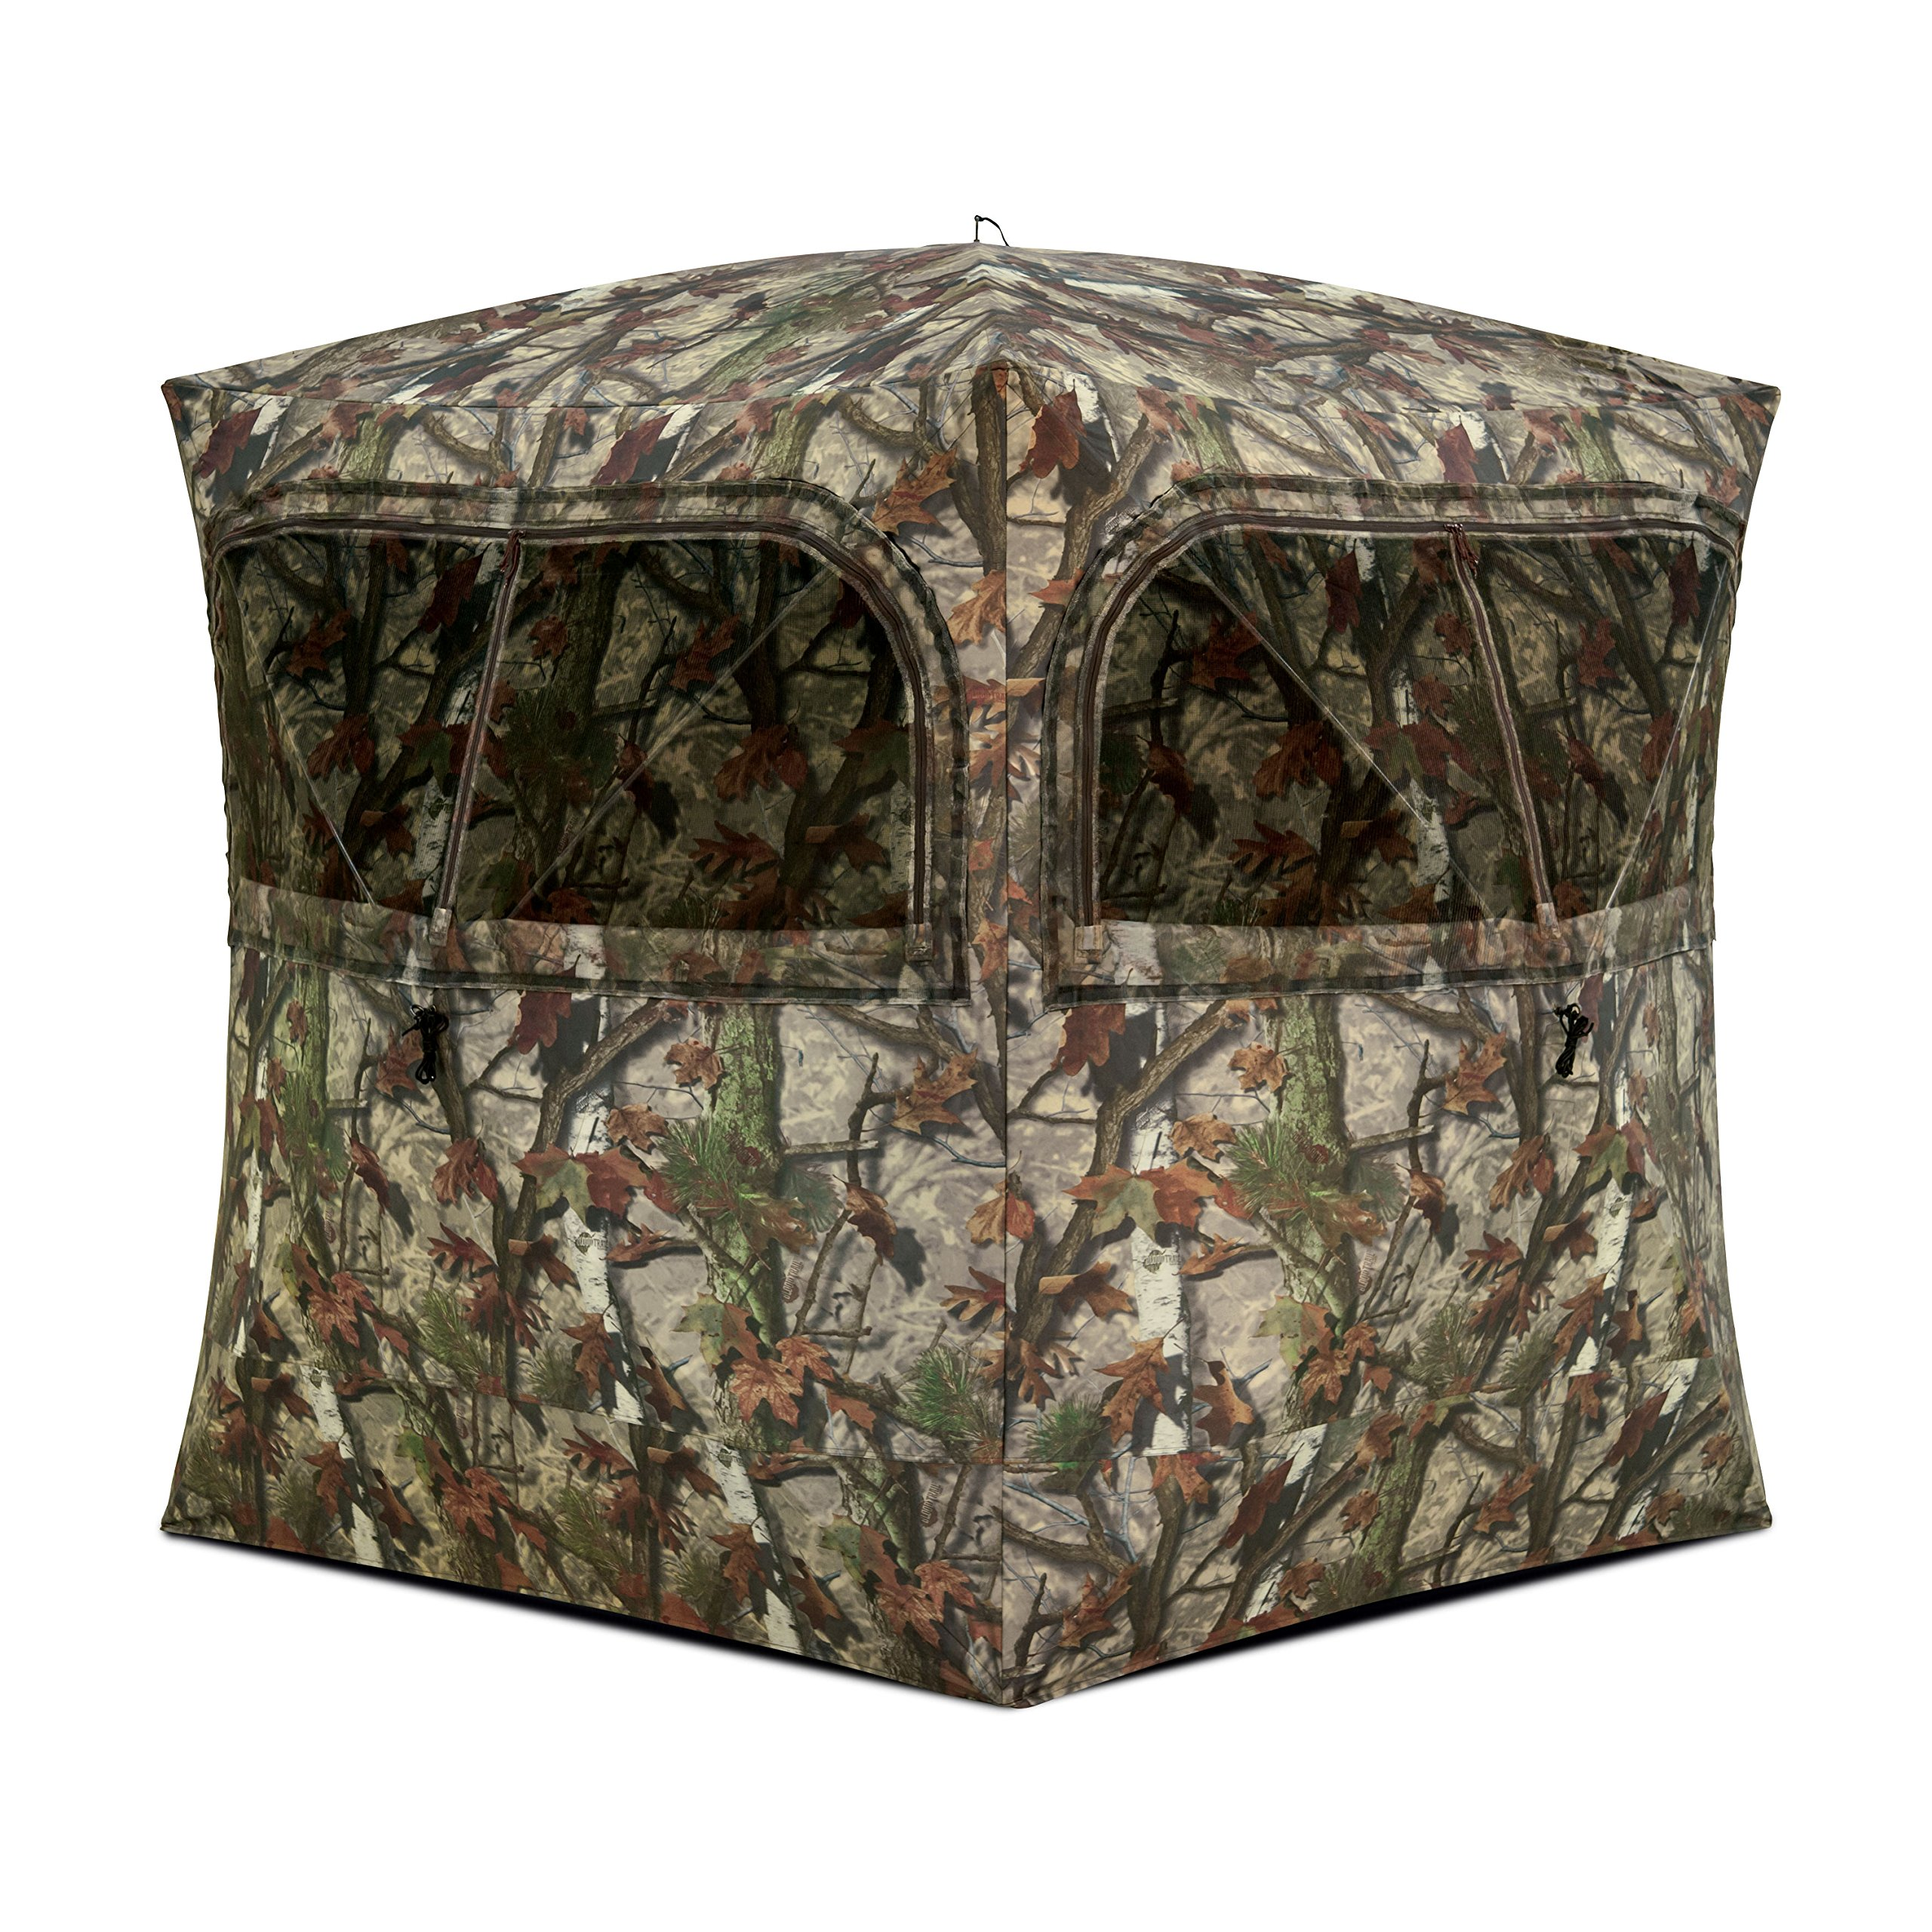 Barronett Blinds Grounder 350 Hub Blind, Woodland Camo by Barronett Blinds